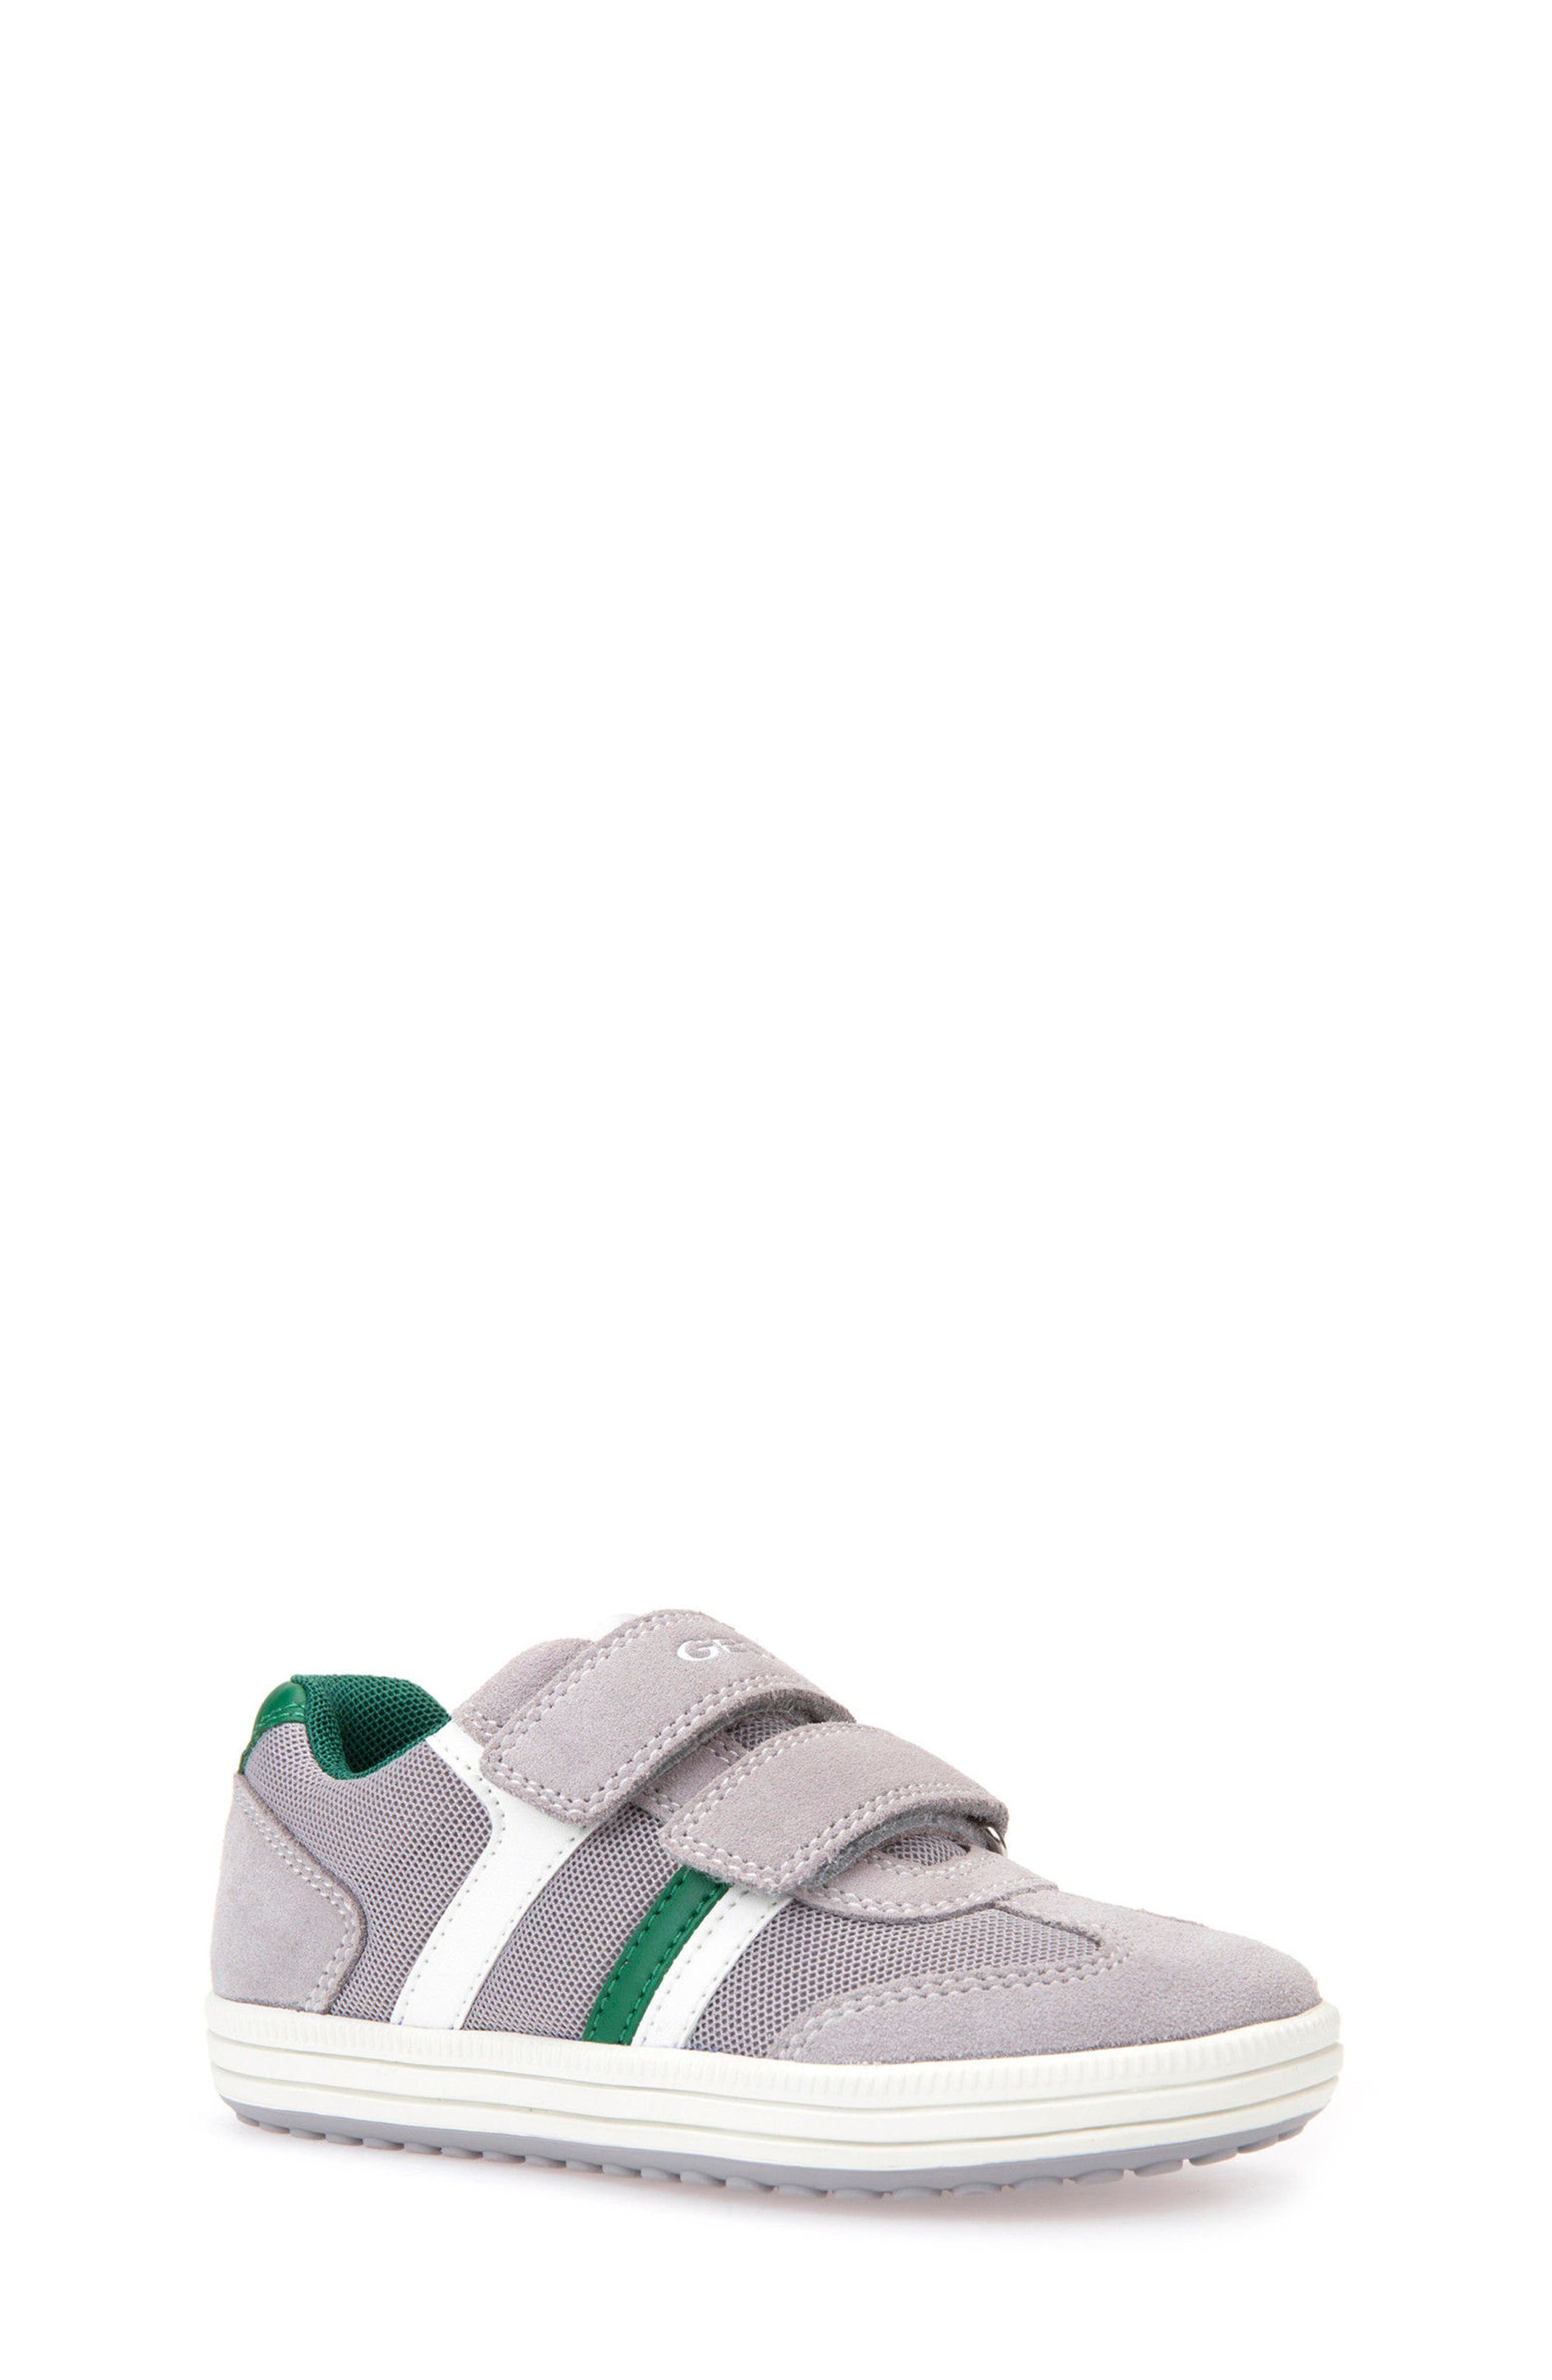 GEOX Kilwi Sneaker, Main, color, 068